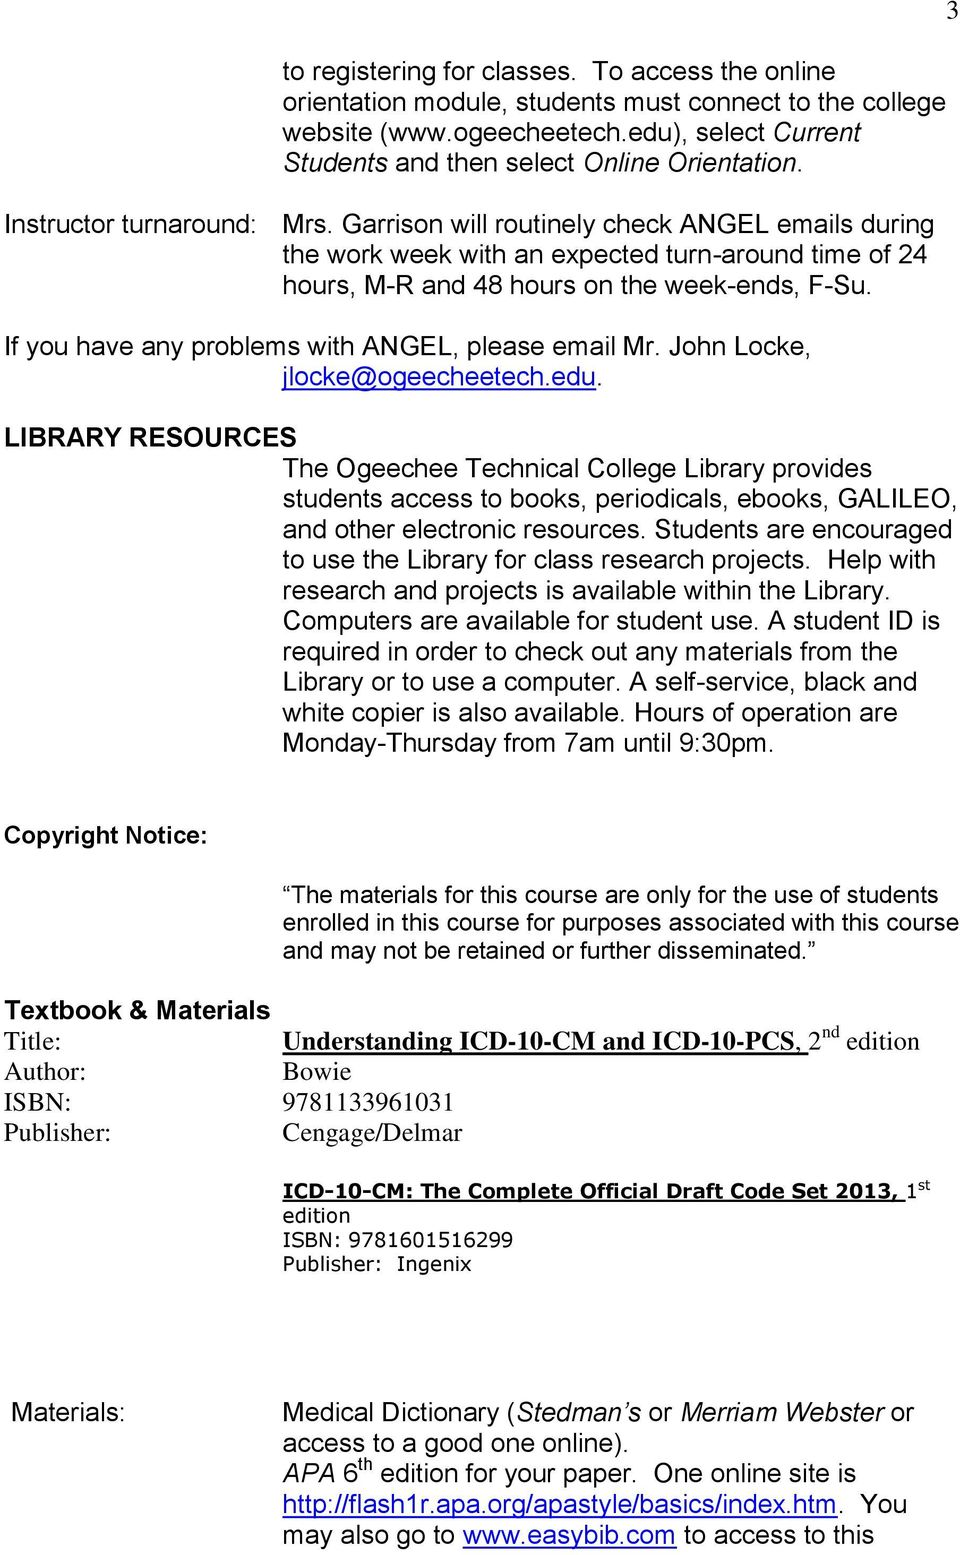 If you have any problems with ANGEL, please email Mr. John Locke, jlocke@ogeecheetech.edu.